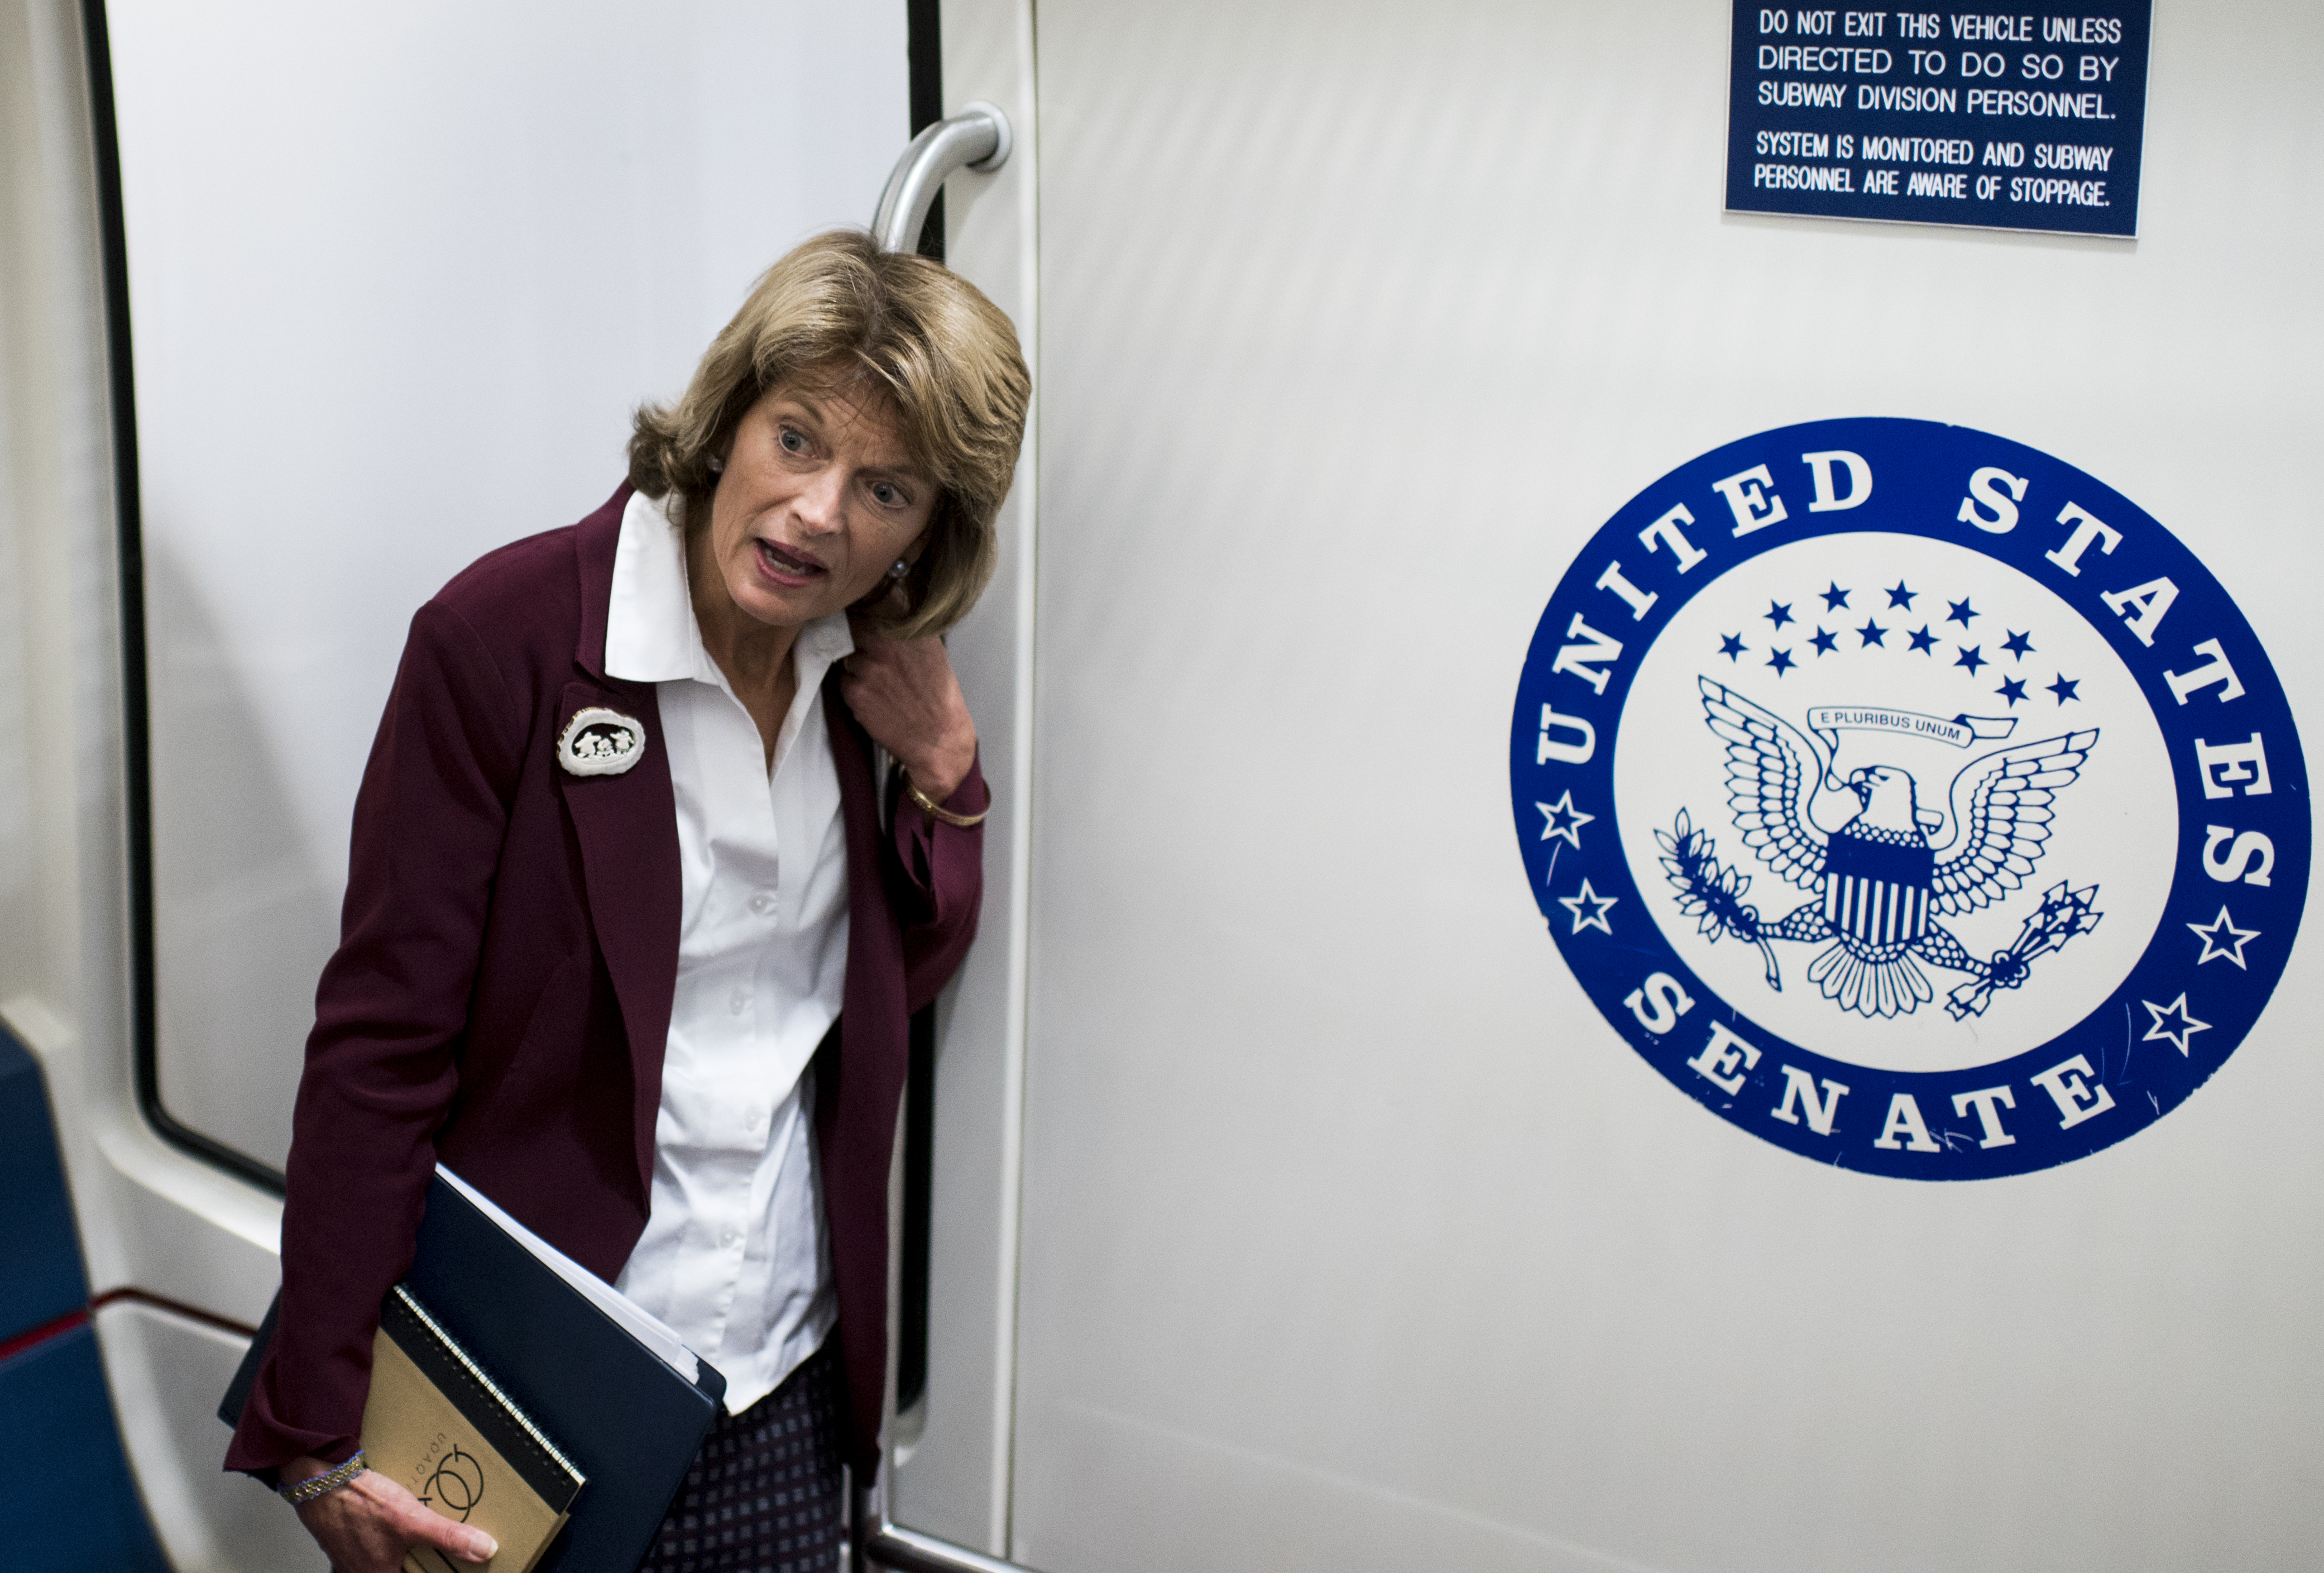 UNITED STATES - JANUARY 28: Sen. Lisa Murkowski, R-Alaska, speaks with reporters in the Senate subway as she leaves the Senate Republicans' caucus meeting to discuss witnesses for the Senate impeachment trial proceedings on Tuesday, Jan. 28, 2020. (Photo By Bill Clark/CQ Roll Call)